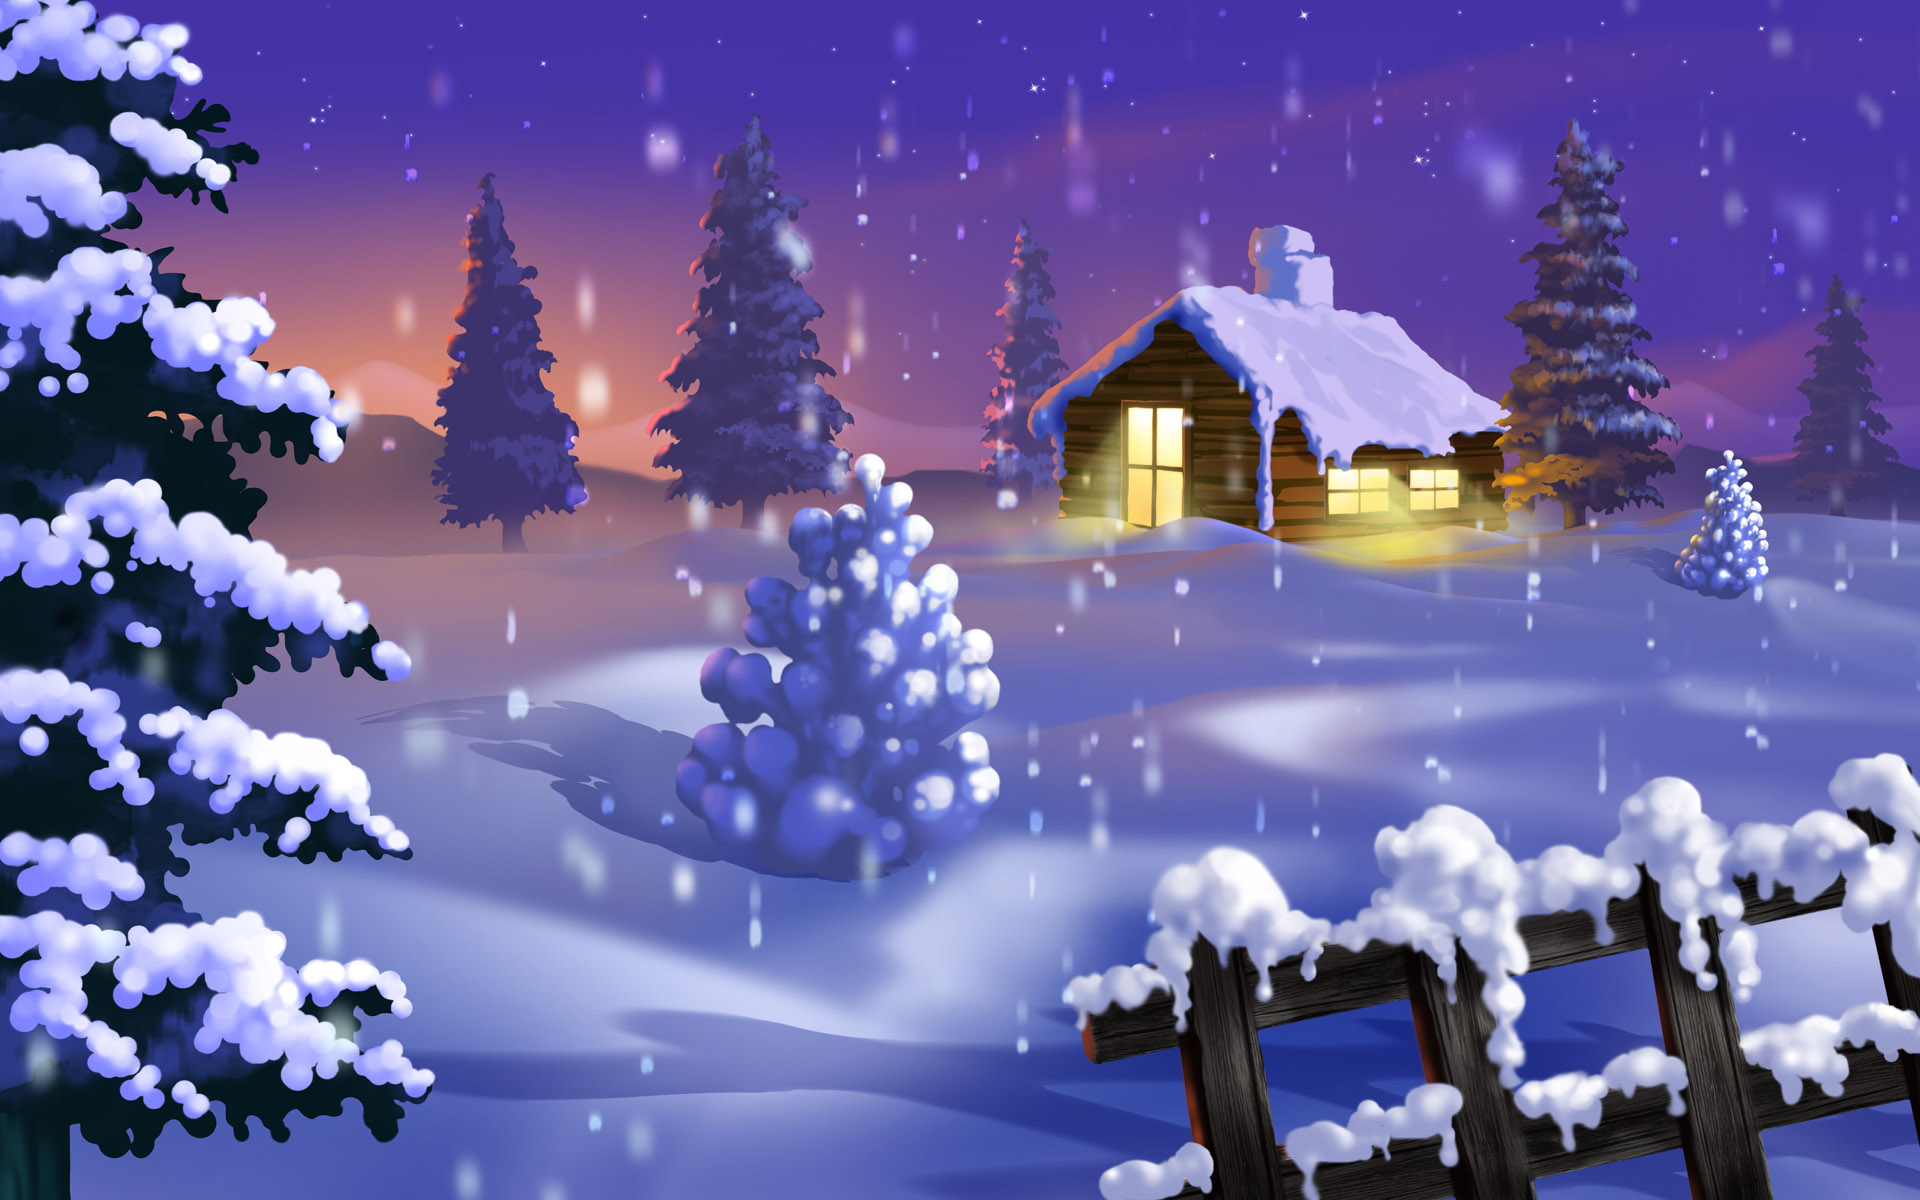 1920x1200 Silent Winter desktop PC and Mac wallpaper 1920x1200